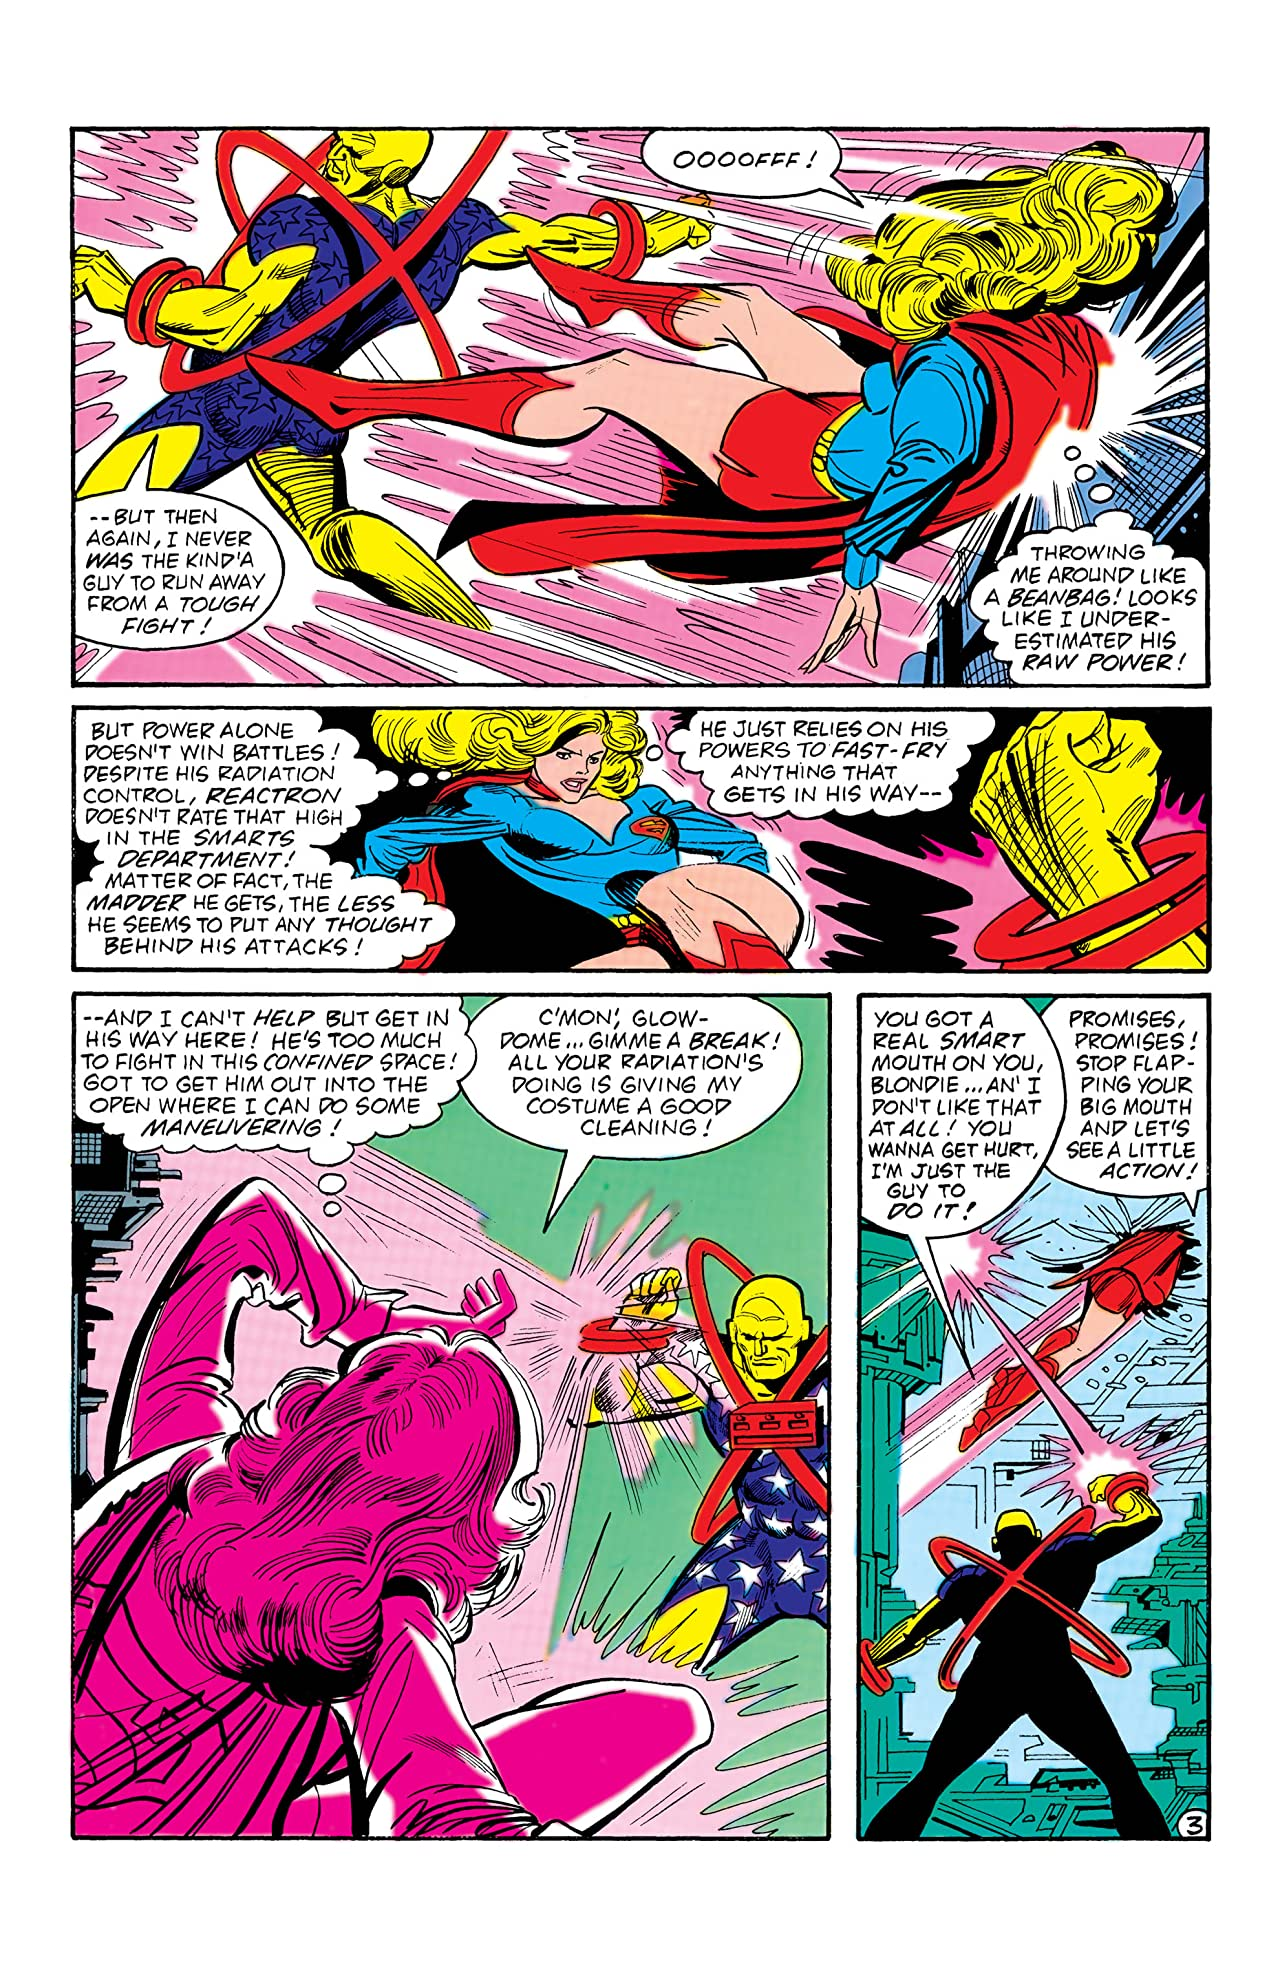 The Daring New Adventures of Supergirl (1982-1984) #9